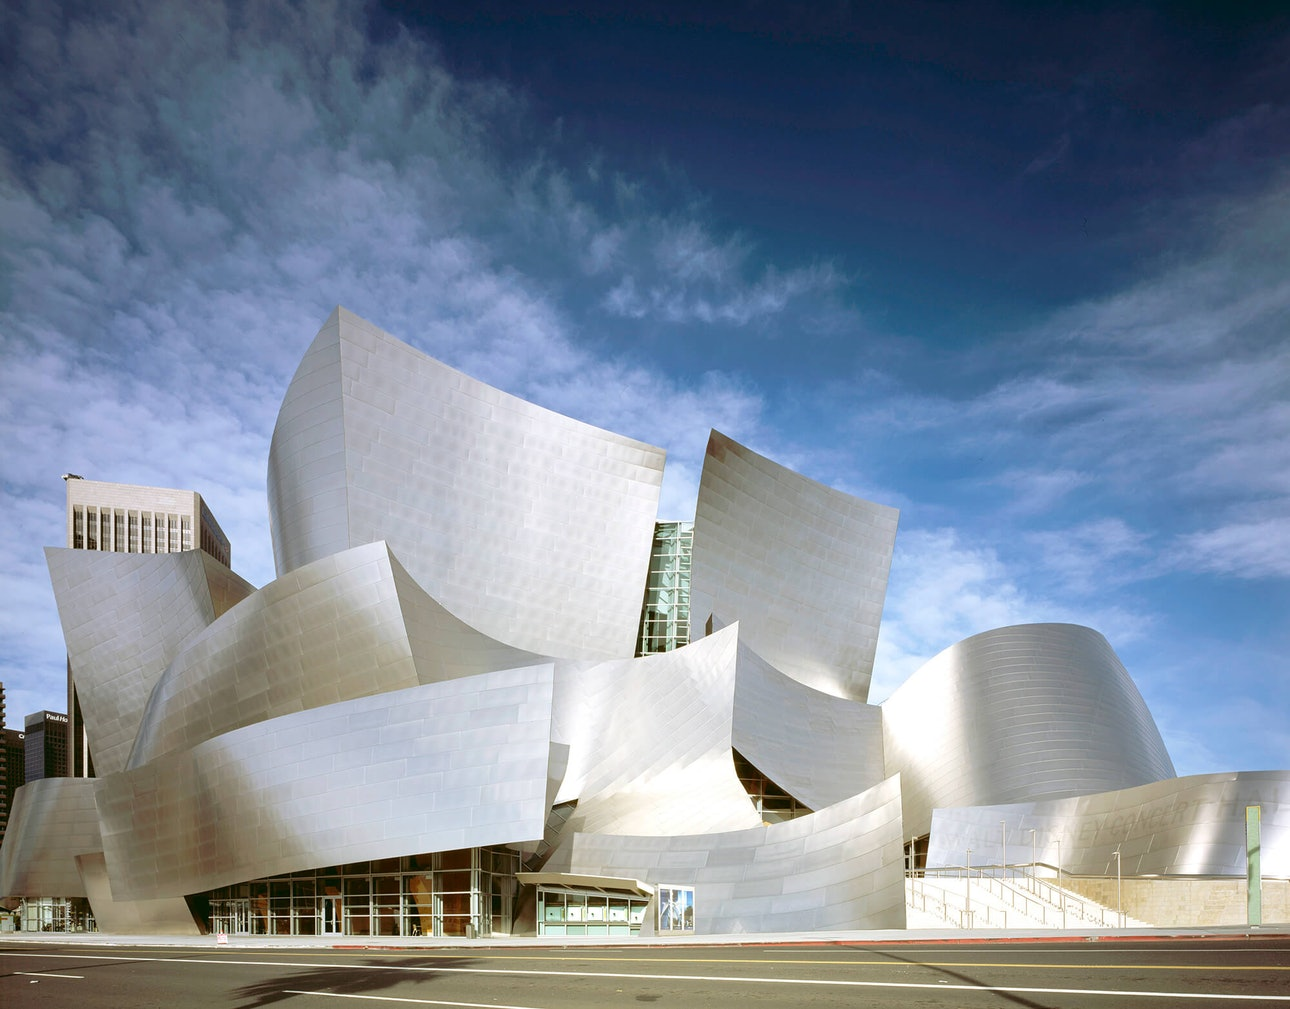 lossy-page1-7694px-Modernist_architect_Frank_Gehry's_Walt_Disney_Concert_Hall,_Los_Angeles,_California_LCCN2011634987_gorokhov_gorohov